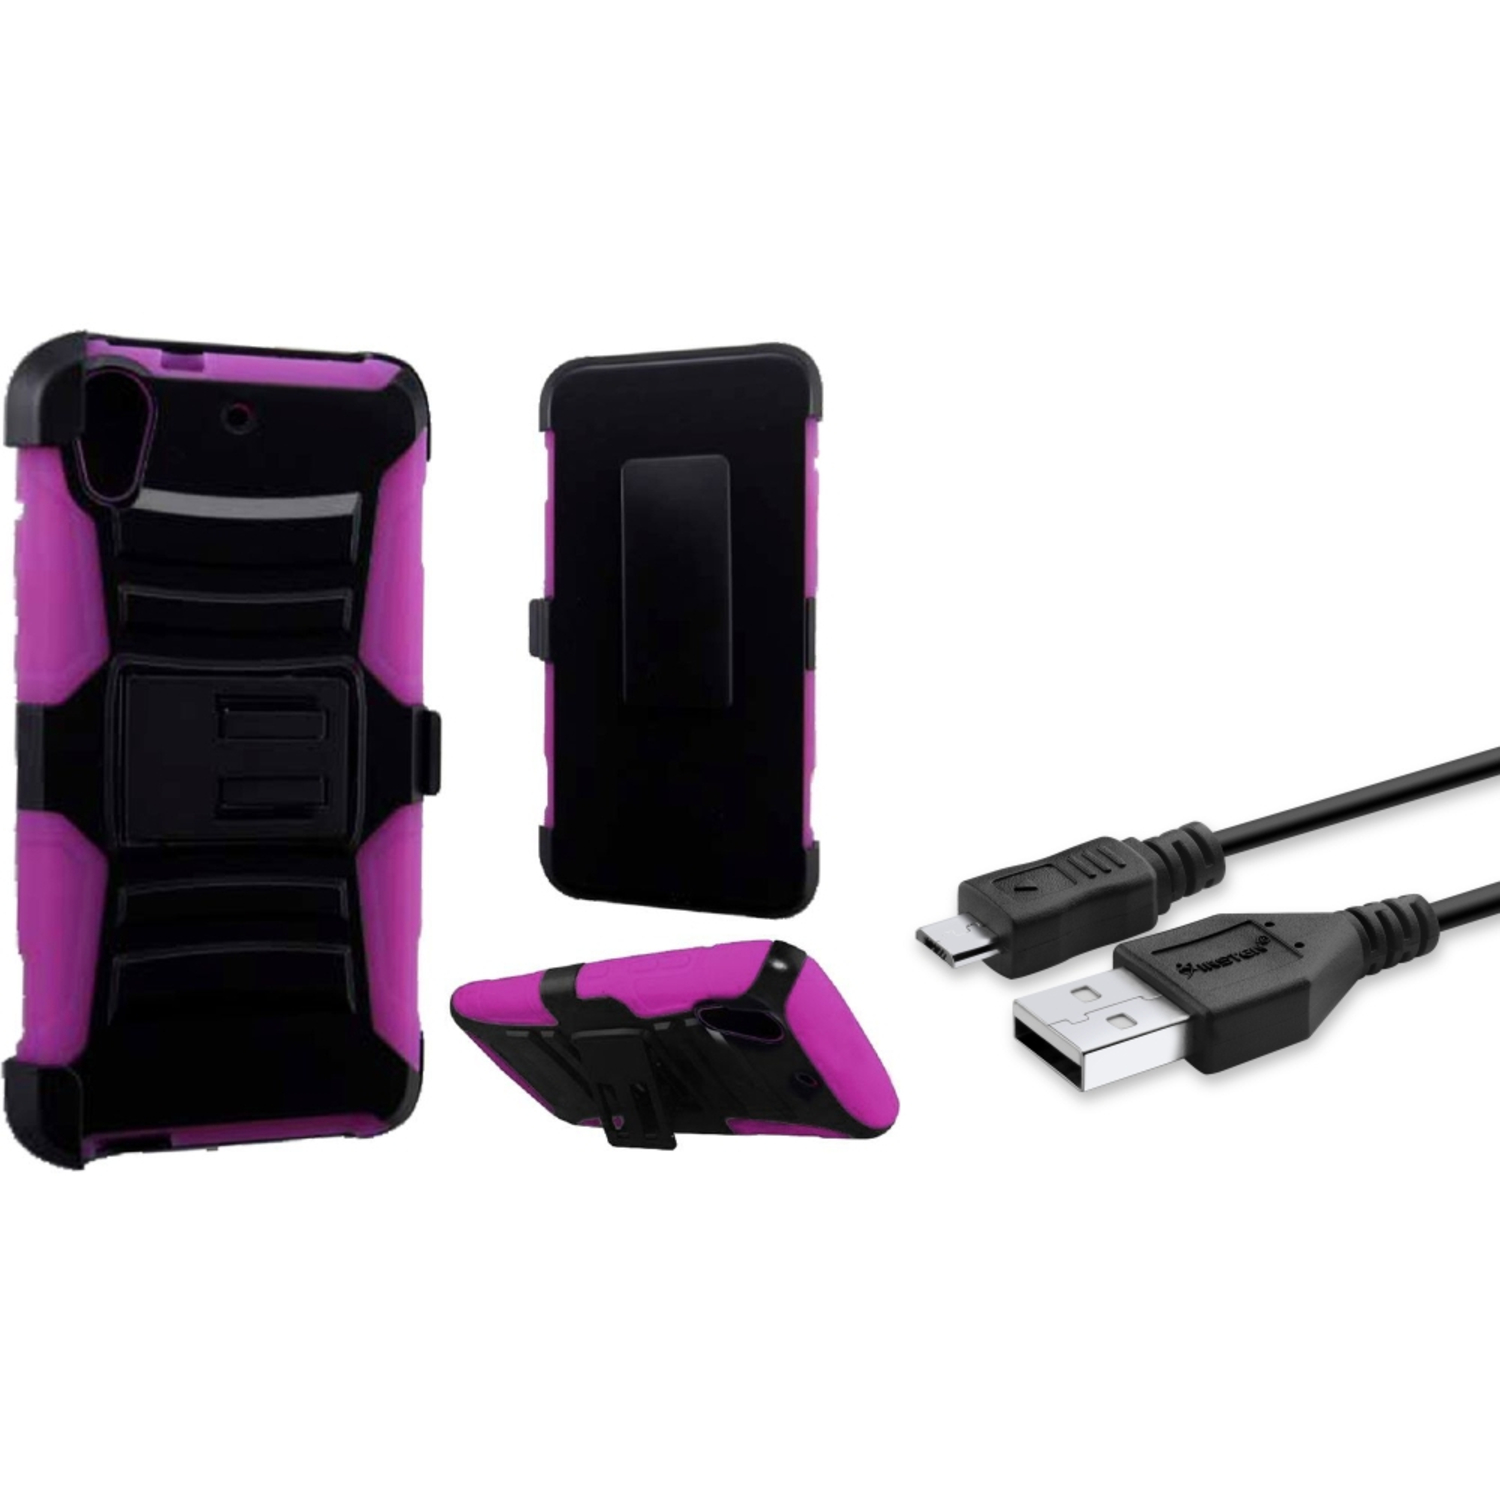 Insten Hard Dual Case w/Holster For HTC Desire 626/626s - Black/Pink (+ USB Cable)